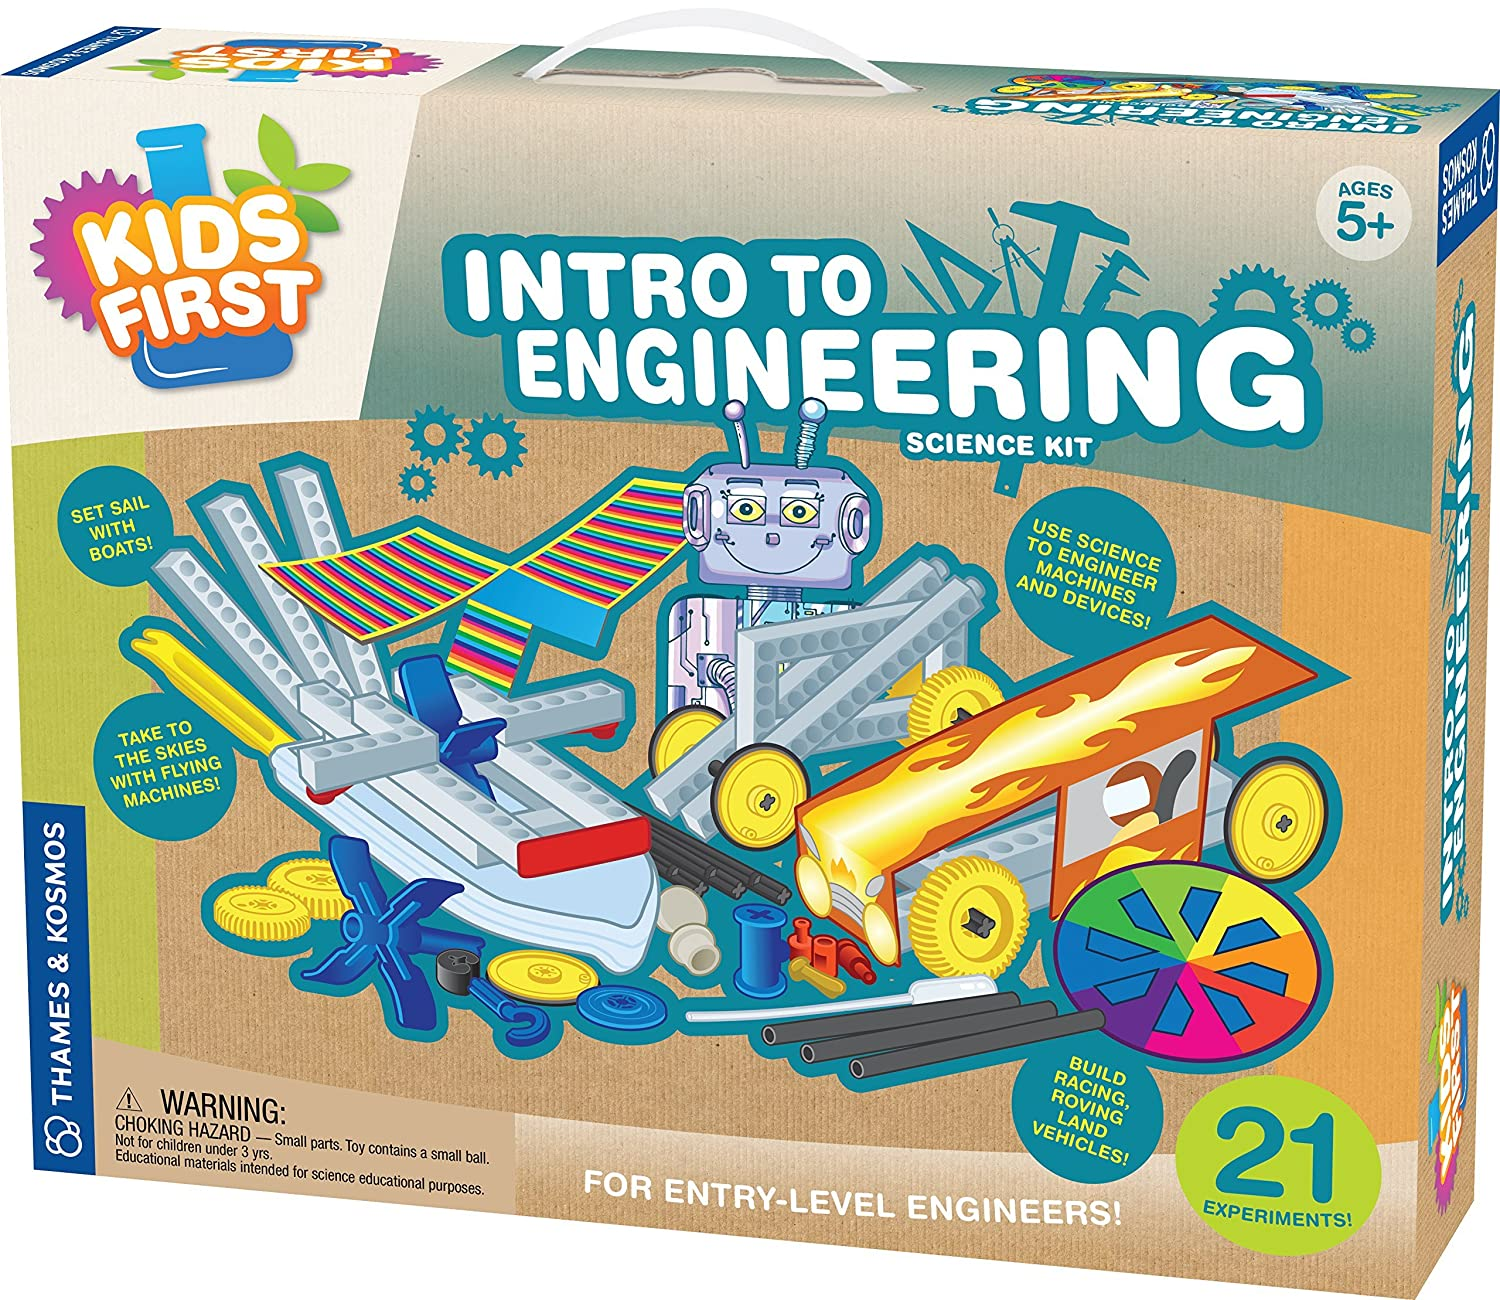 Amazon Kids First Intro to Engineering Kit Toys & Games